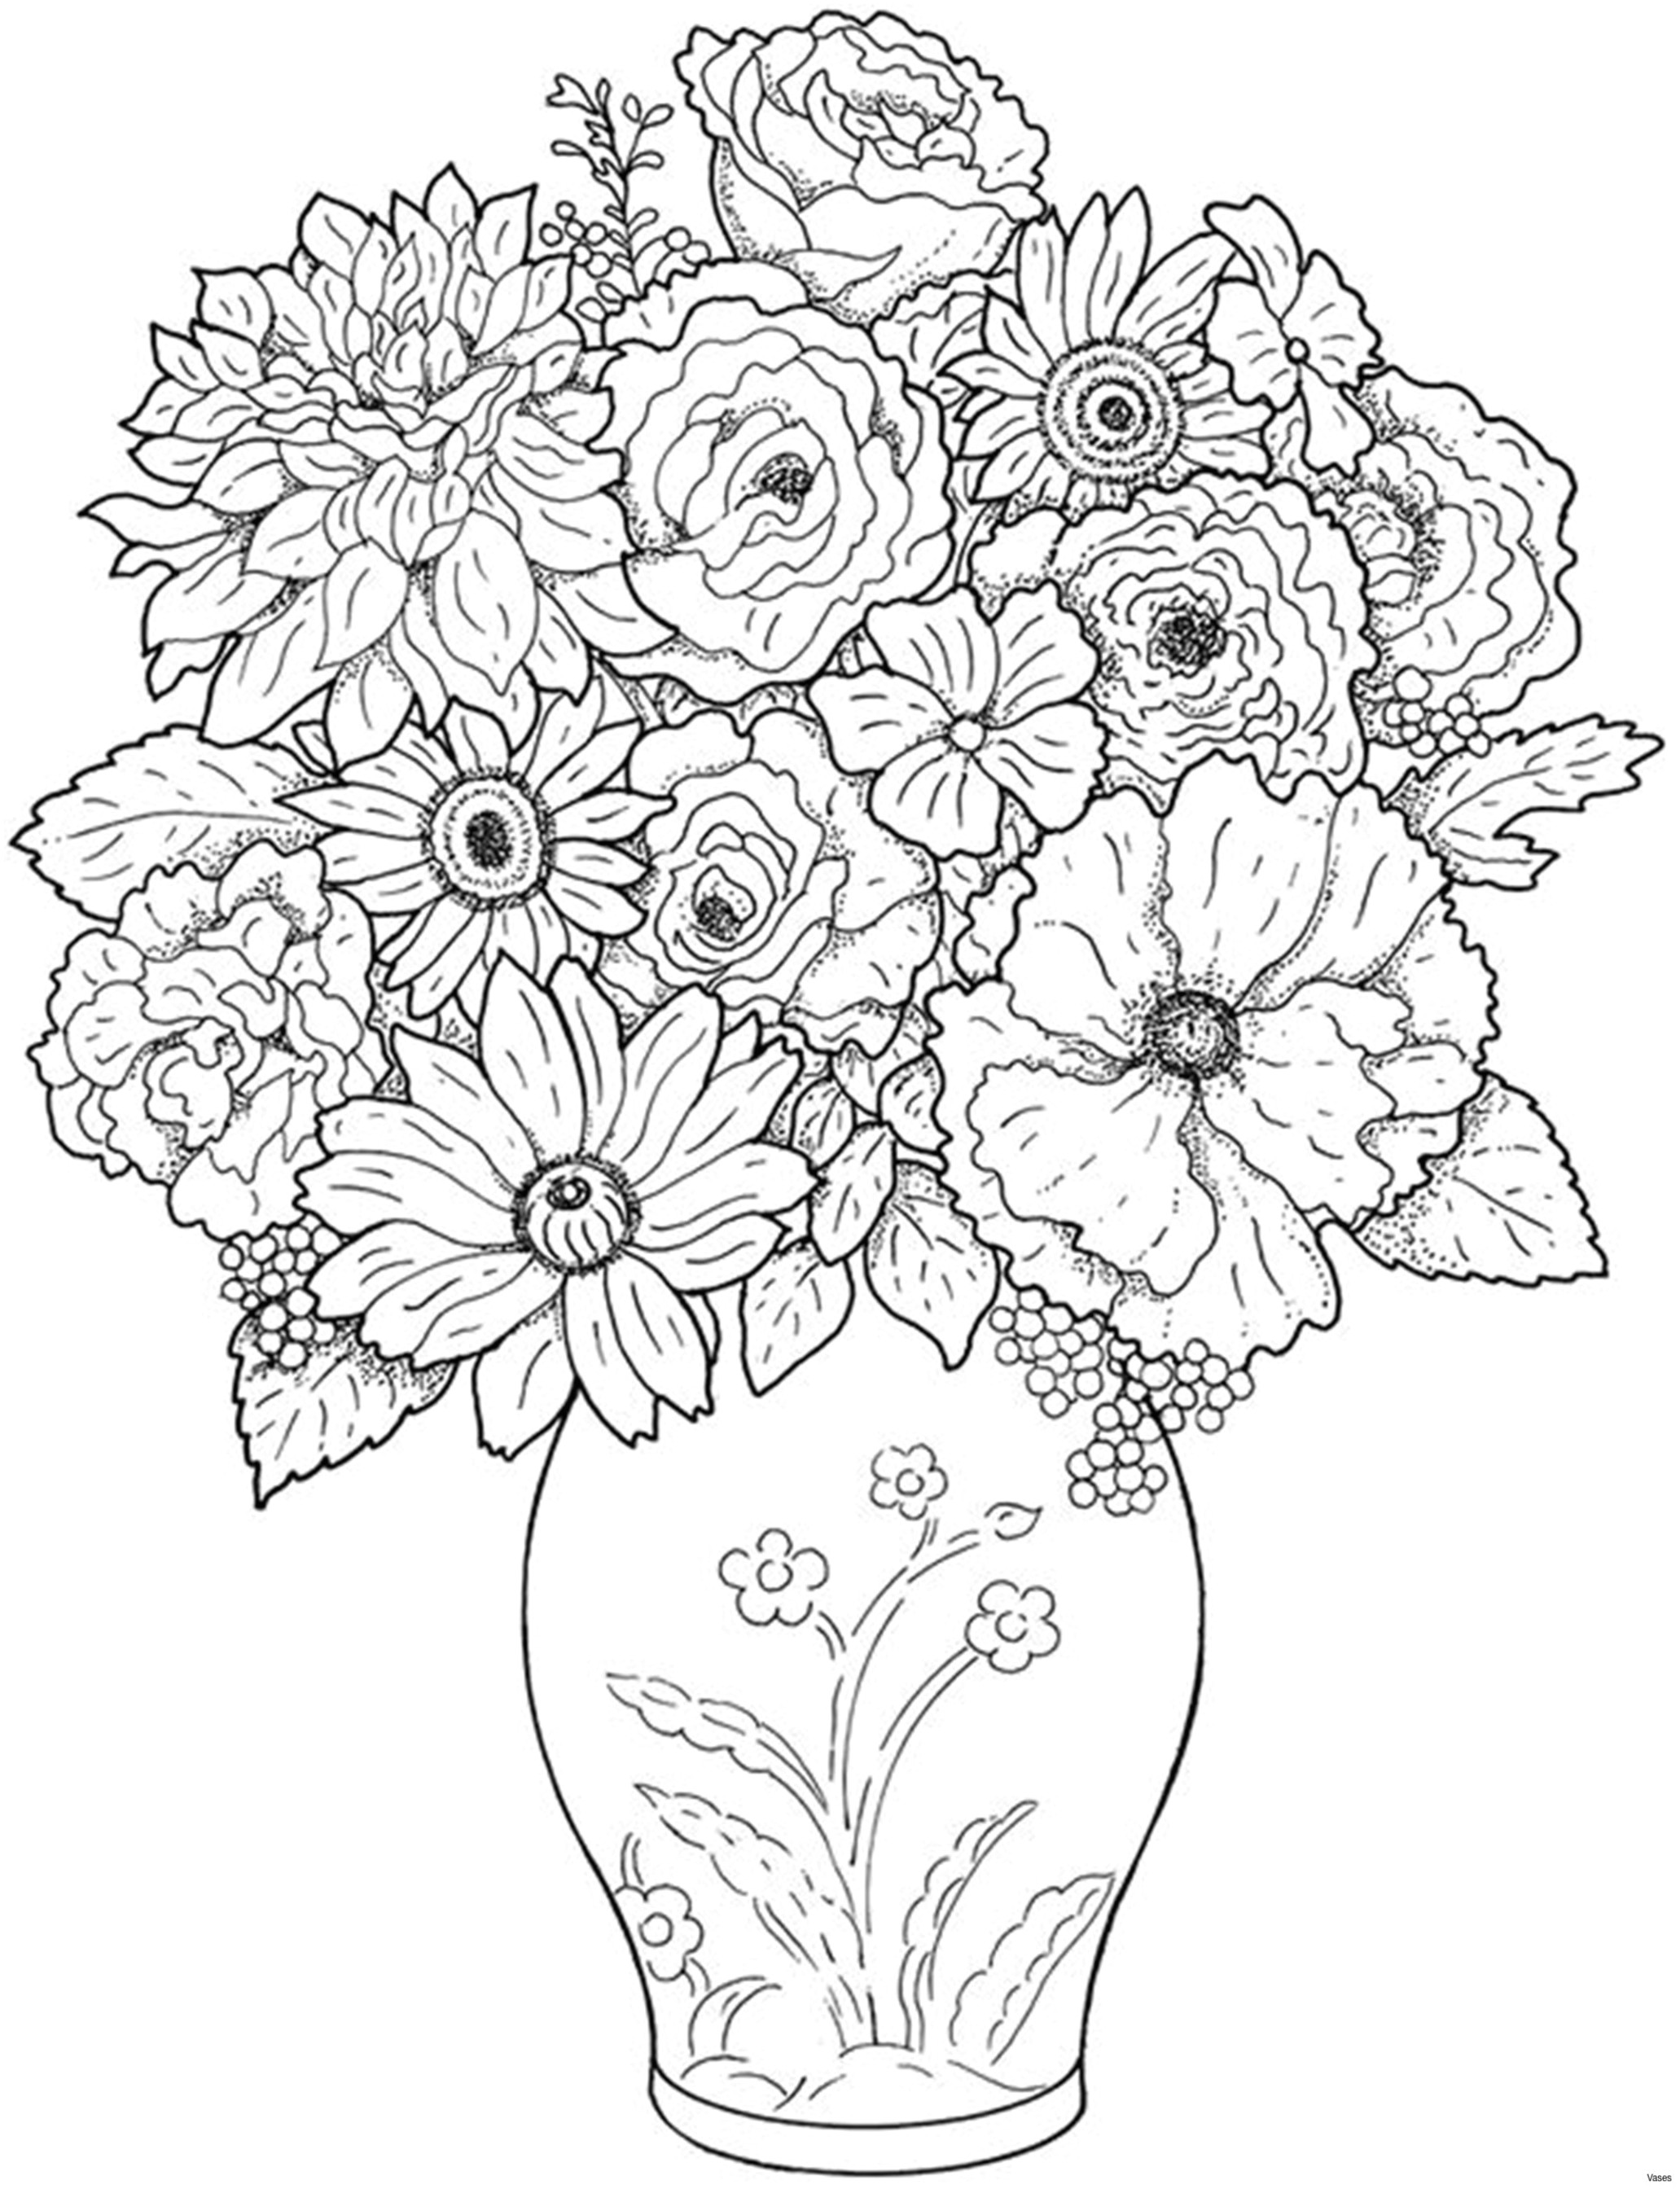 flowers coloring pages best vases flower vase coloring page pages flowers in a top i 0d